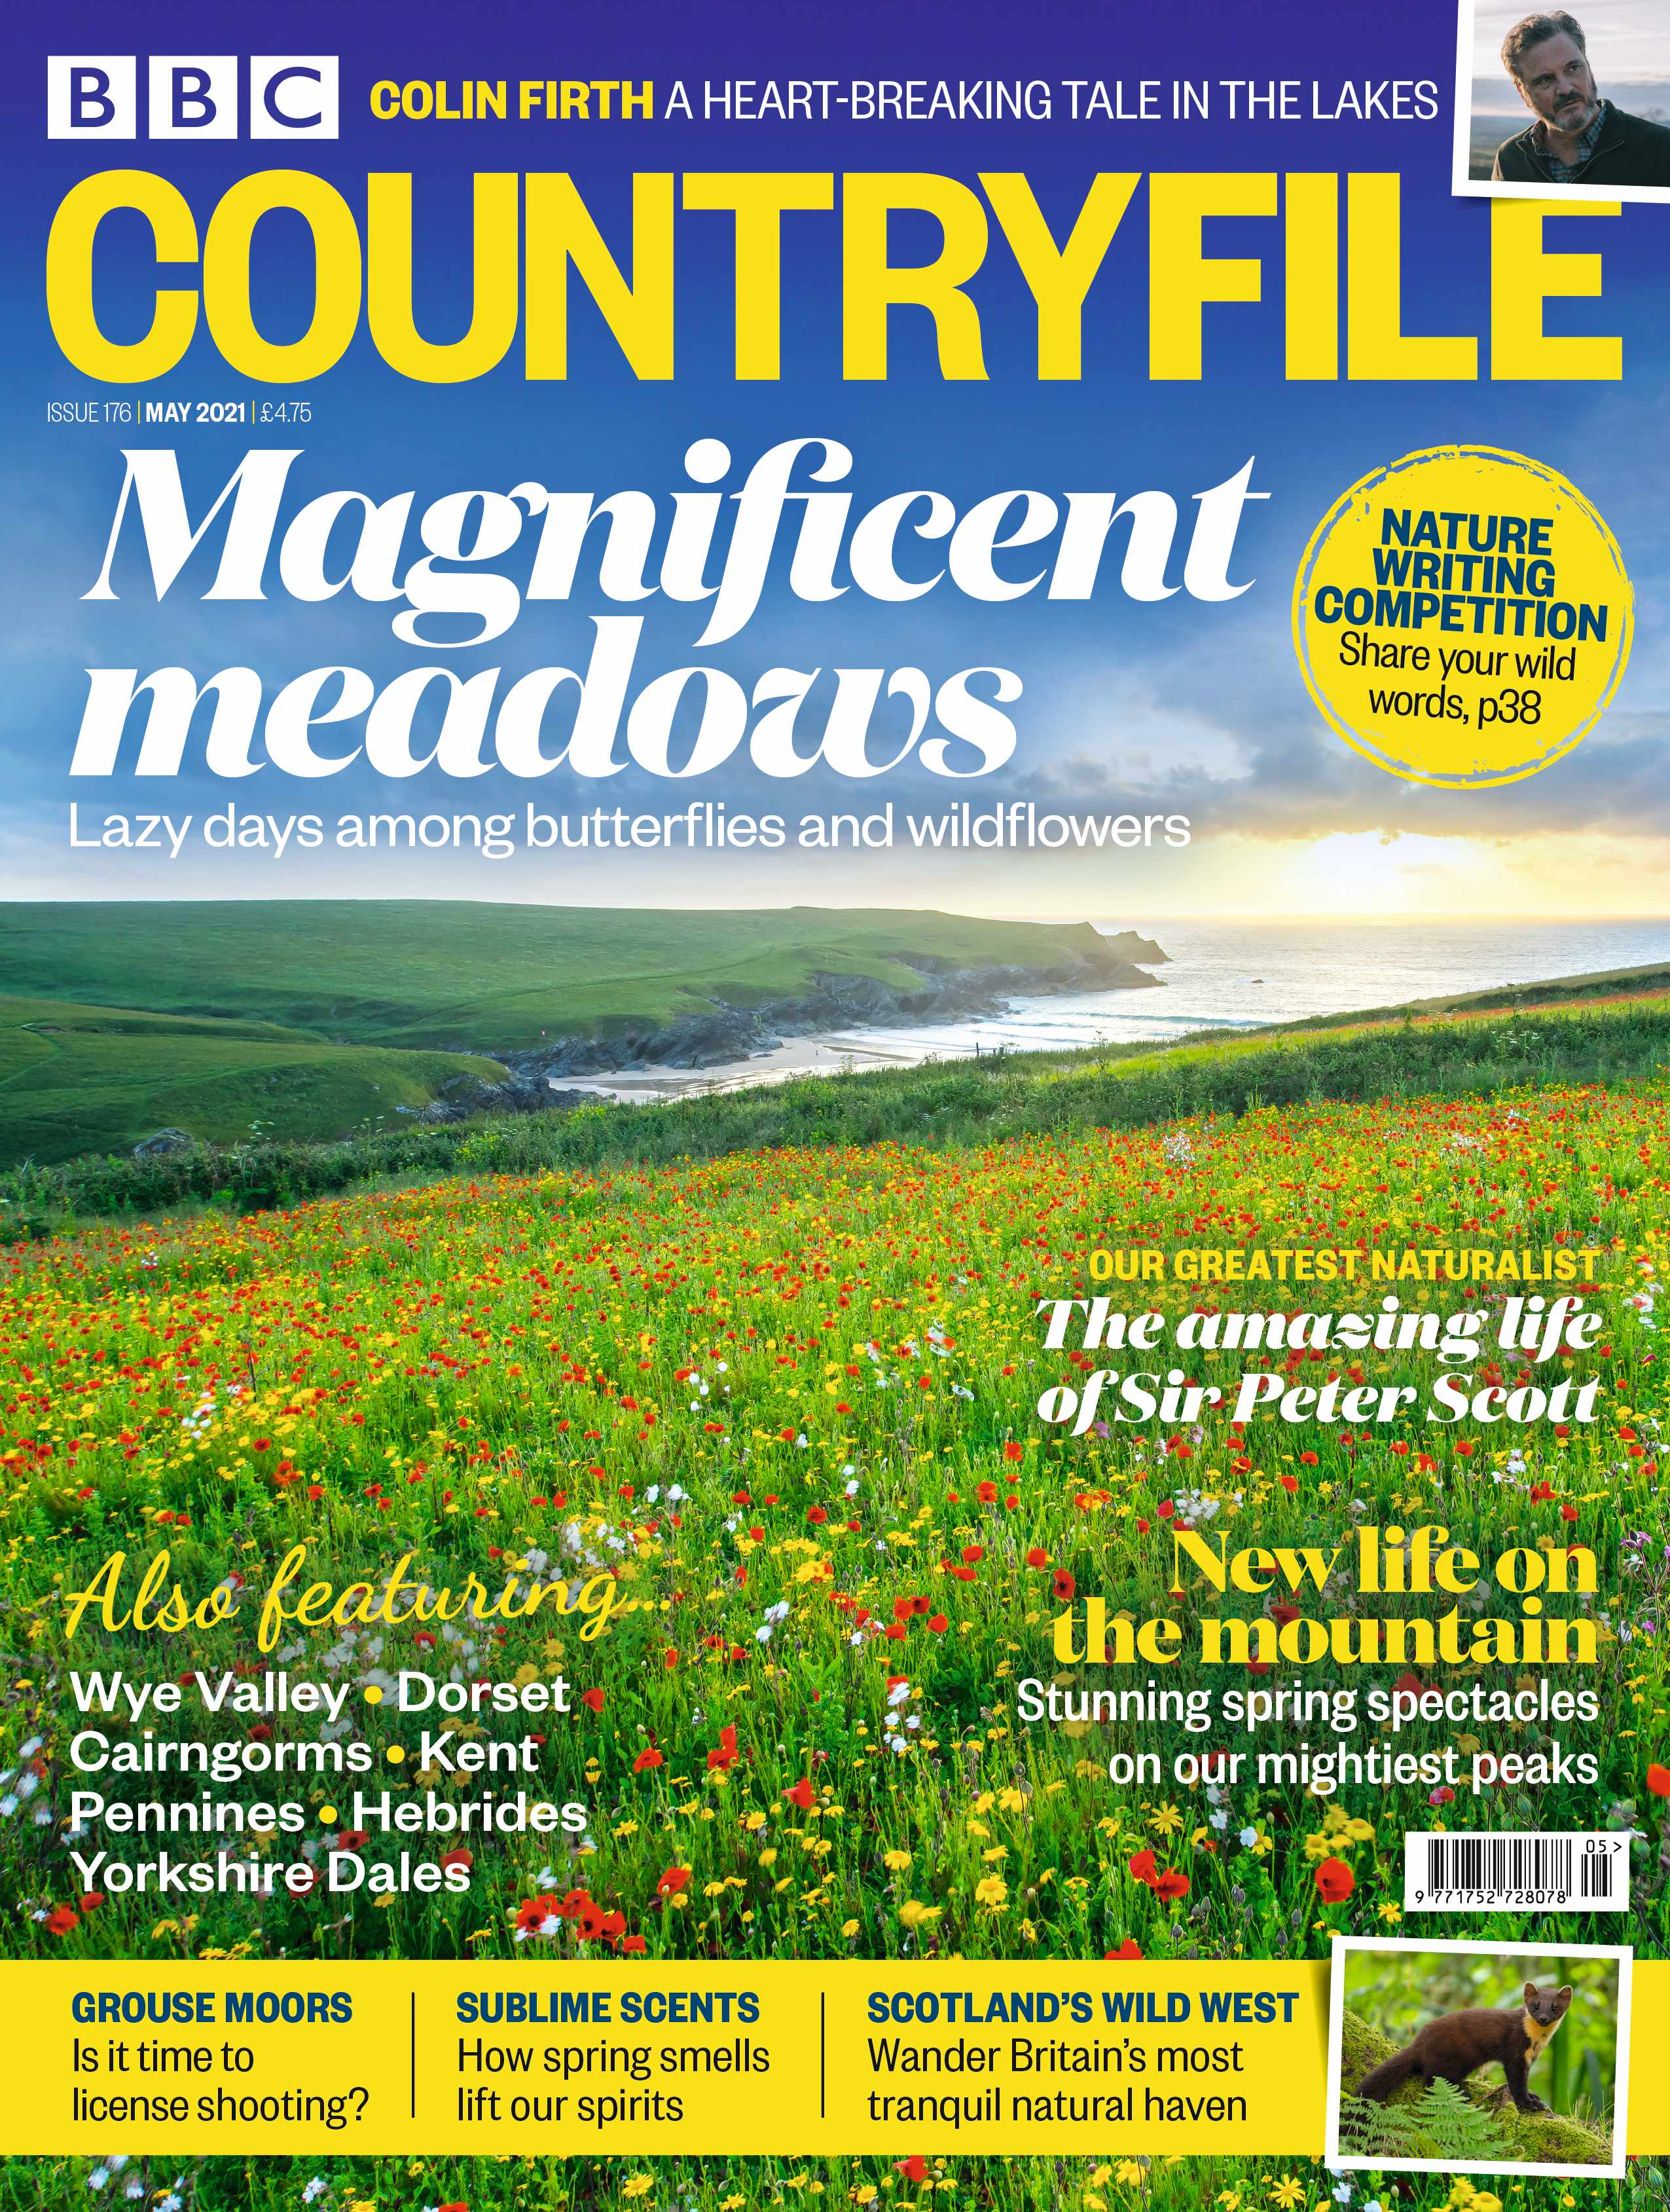 May 2021 issue of BBC Countryfile Magazine